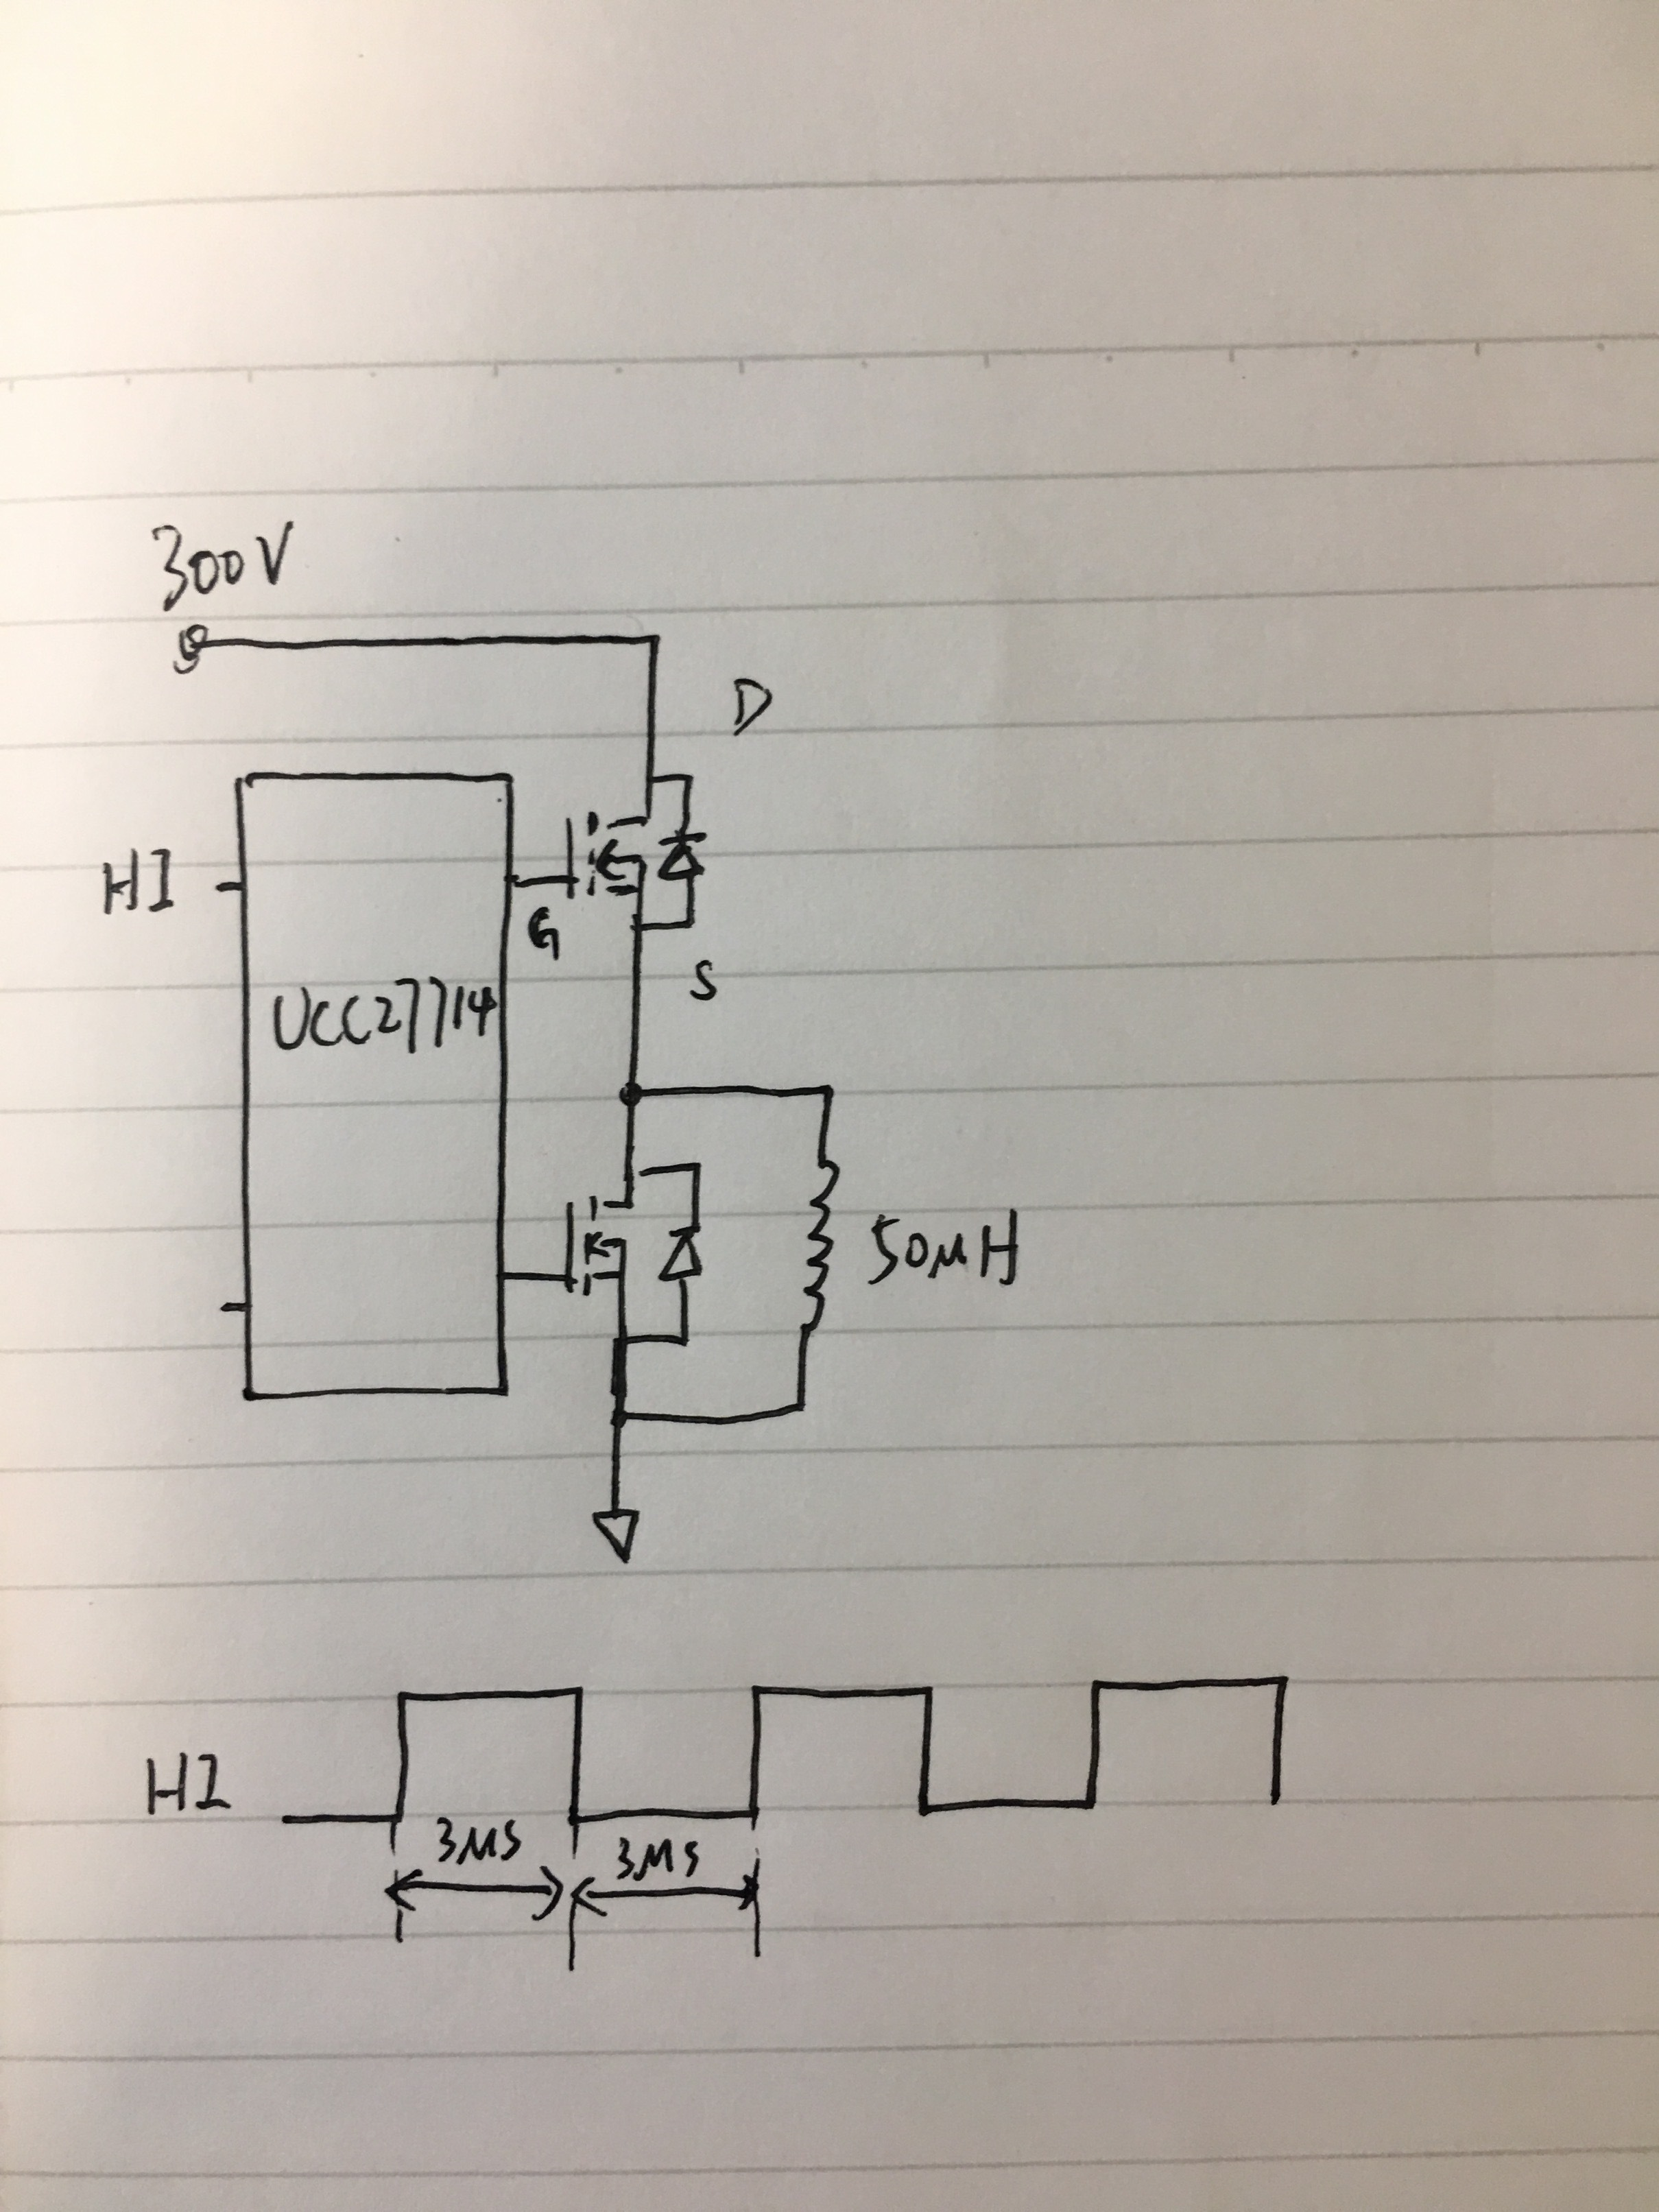 Ucc27714 High Side Mosfet Abnormal Turn Off When Double Pulse Test Testing Circuit At This We Found An Issue Sometimes The First Is Ok But Second On Driver Will Abnormally You Can See